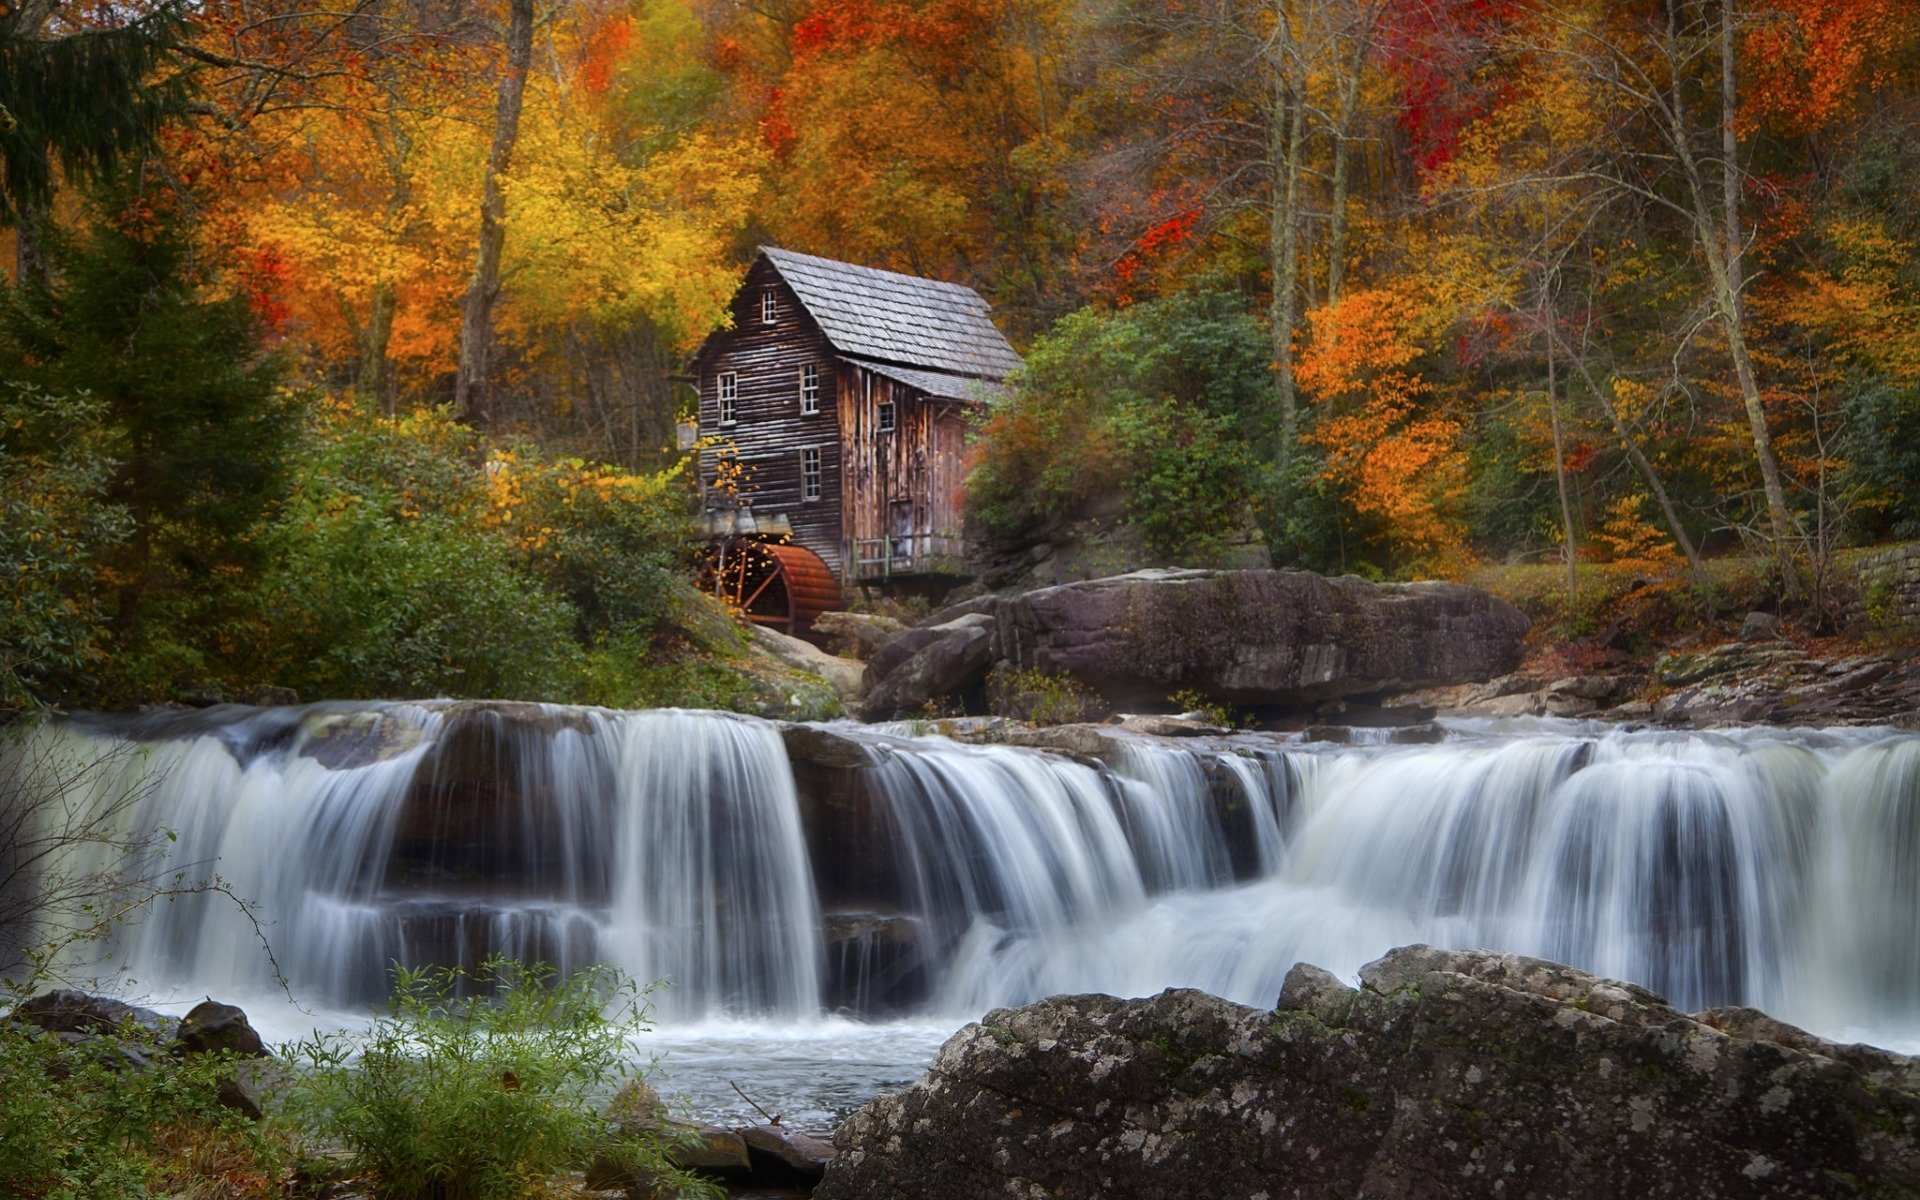 Fall Wallpaper For Laptop Old Mill And Waterfall In Autumn Hd Wallpaper Background